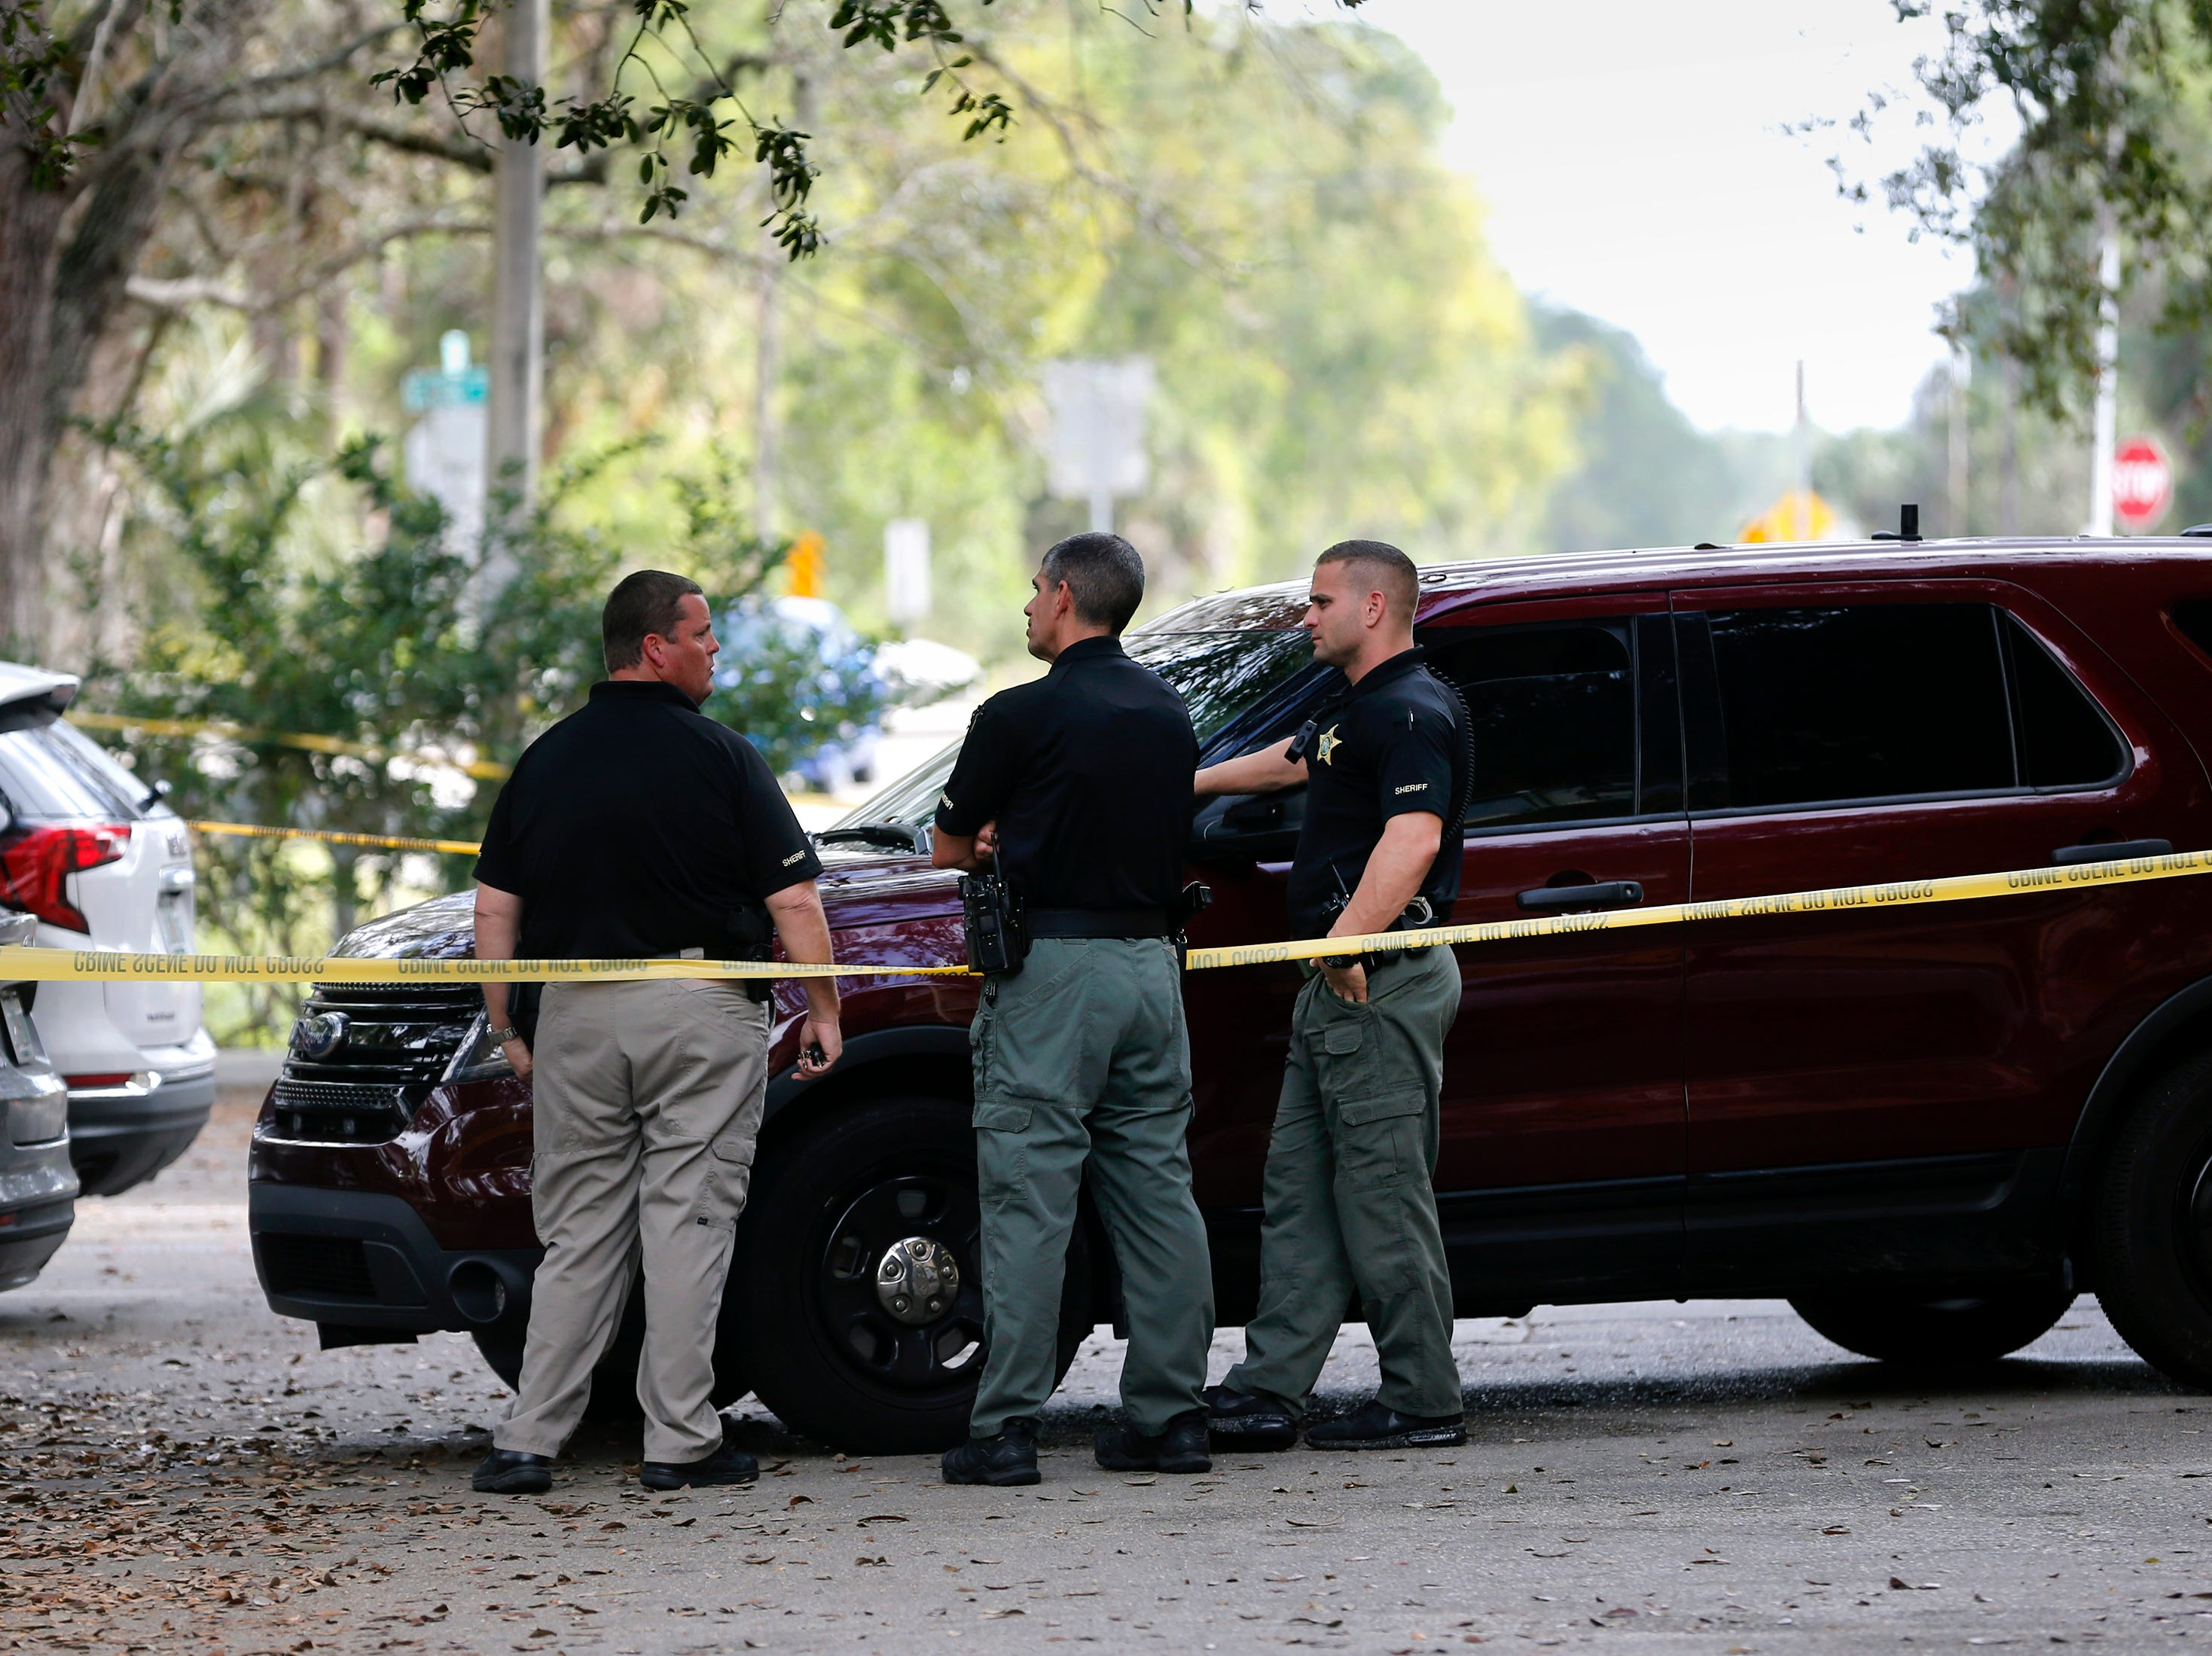 Collier County Sheriff's Office deputies cordon off an area where a homicide occurred, Thursday morning, Jan. 3, 2019, at a condominium complex in the 4000 block of Golden Gate Parkway near Collier Boulevard.